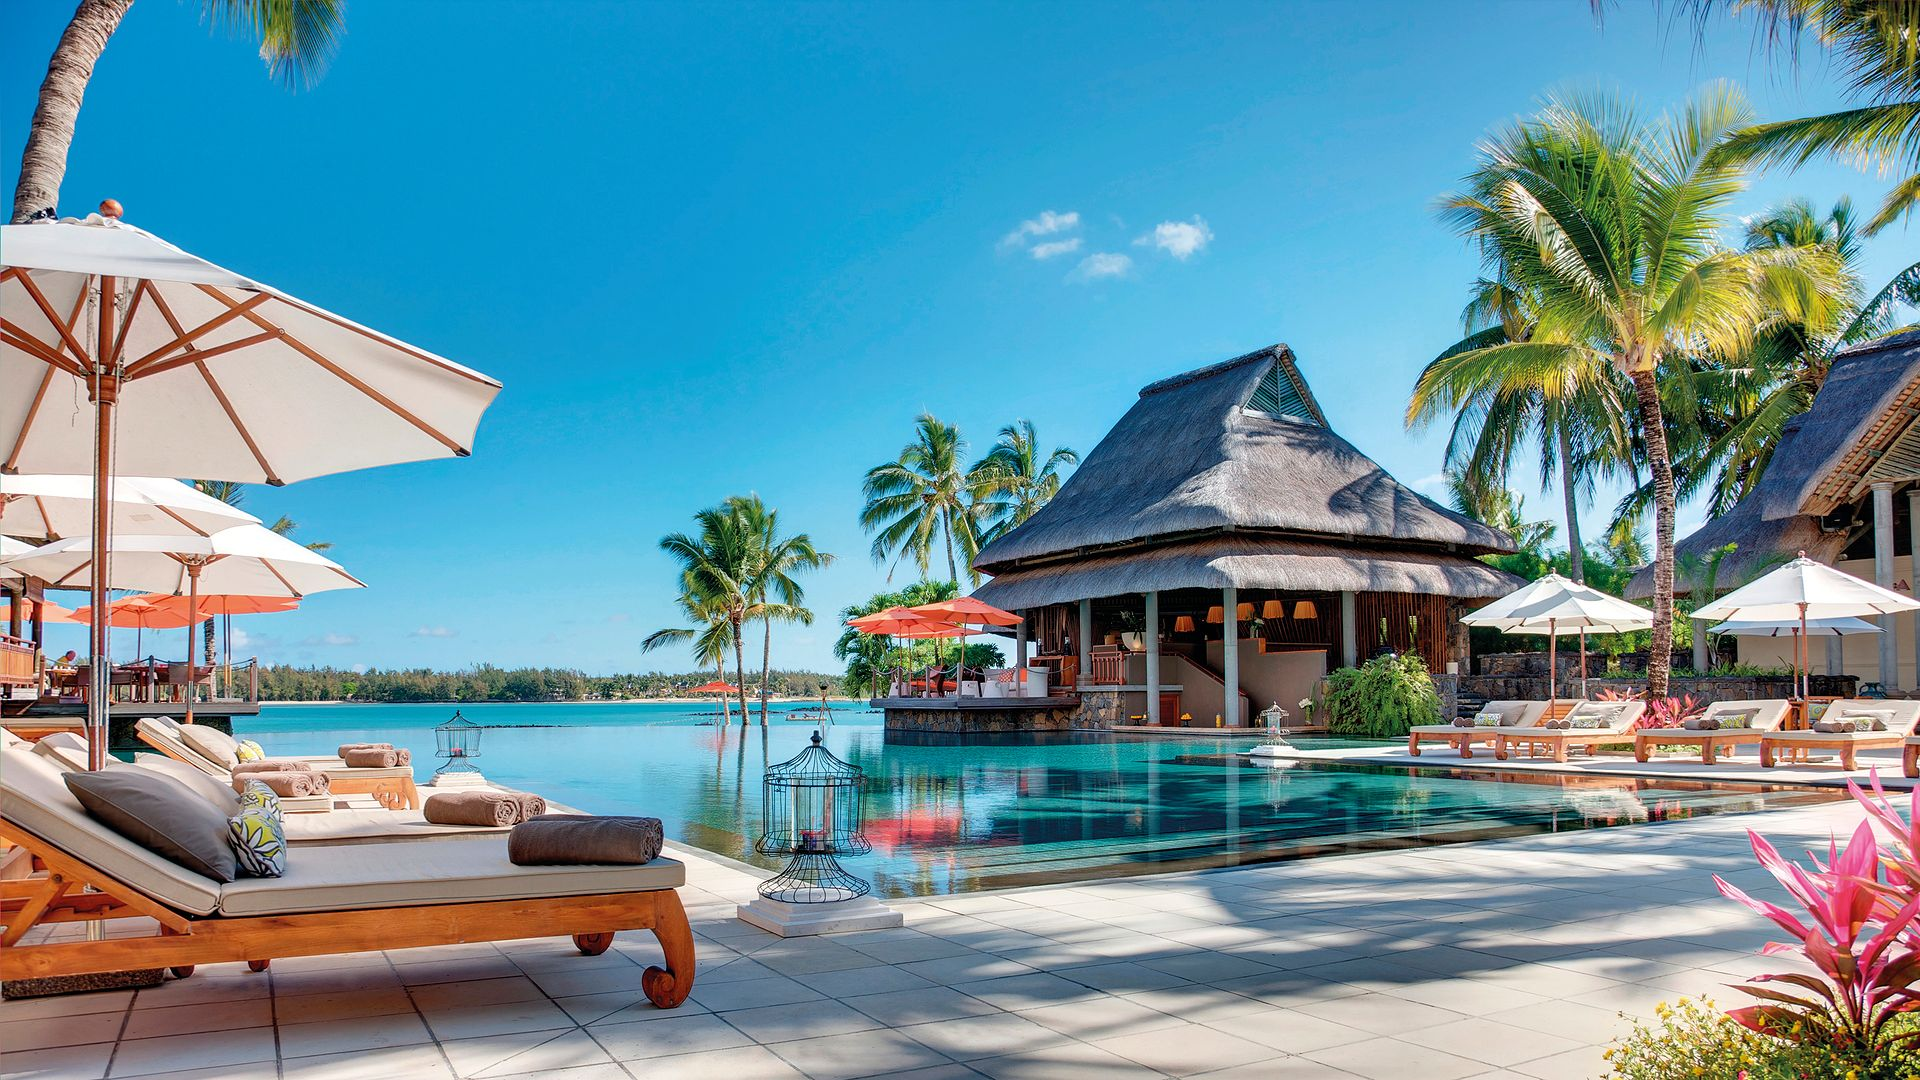 Travel contests & sweepstakes: win luxury holidays!